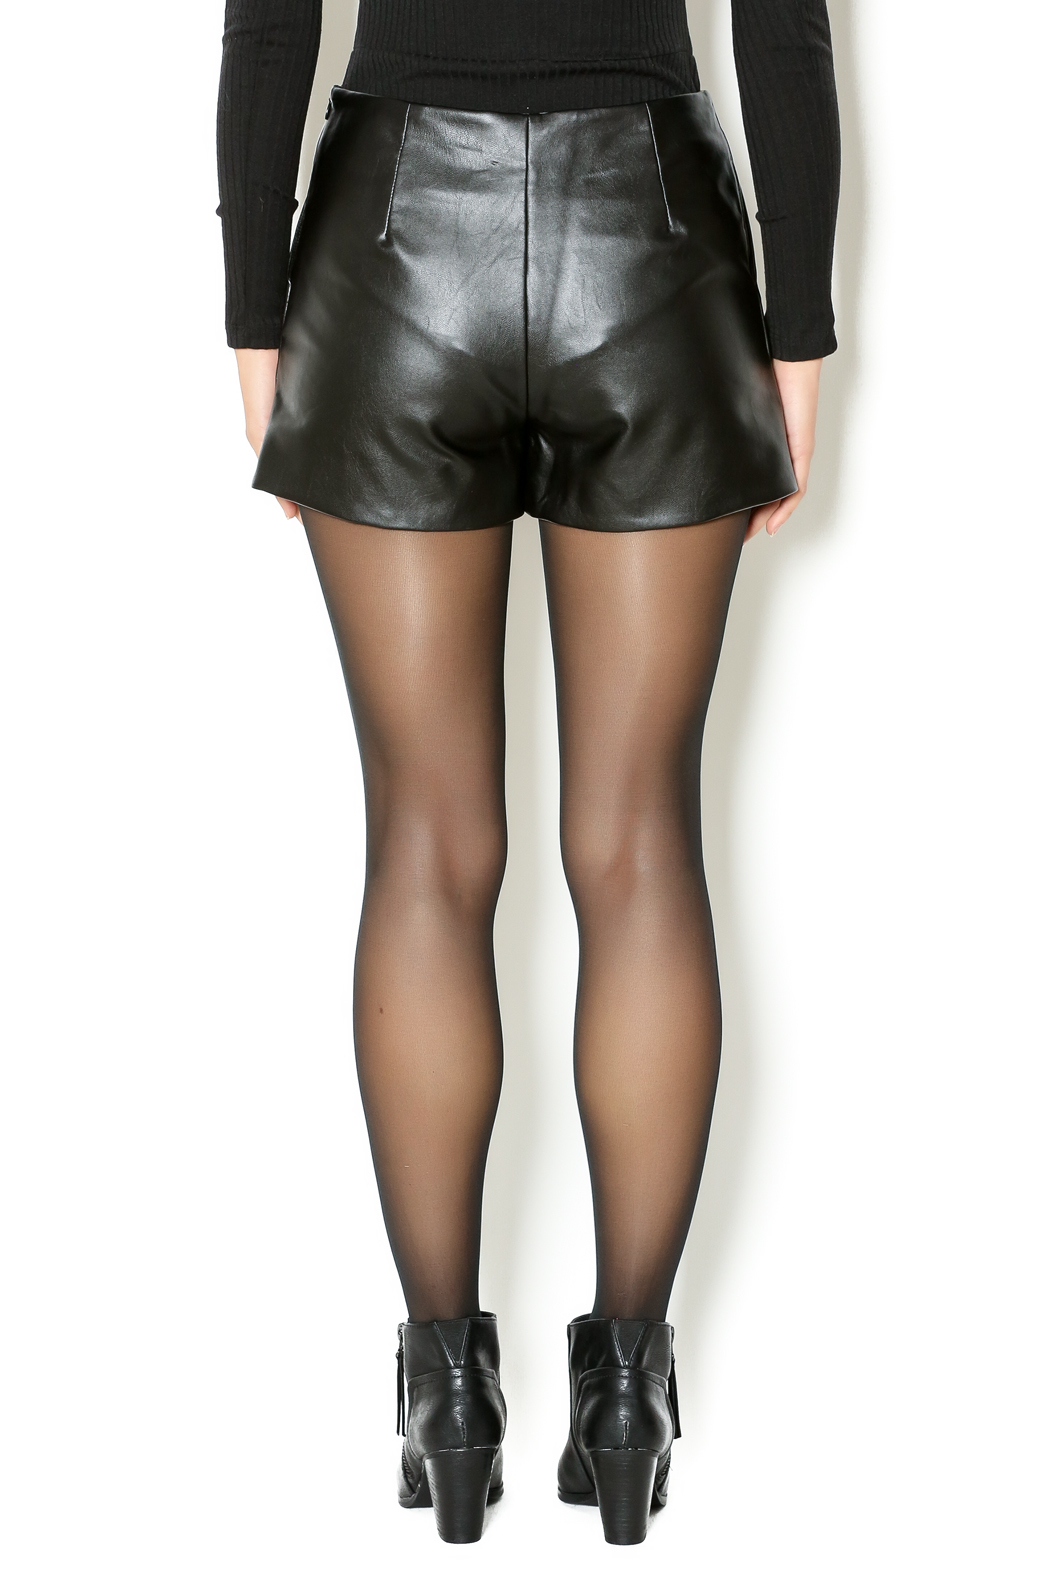 Home Decor Hong Kong Babel Fair Faux Leather Shorts From Mississippi By The